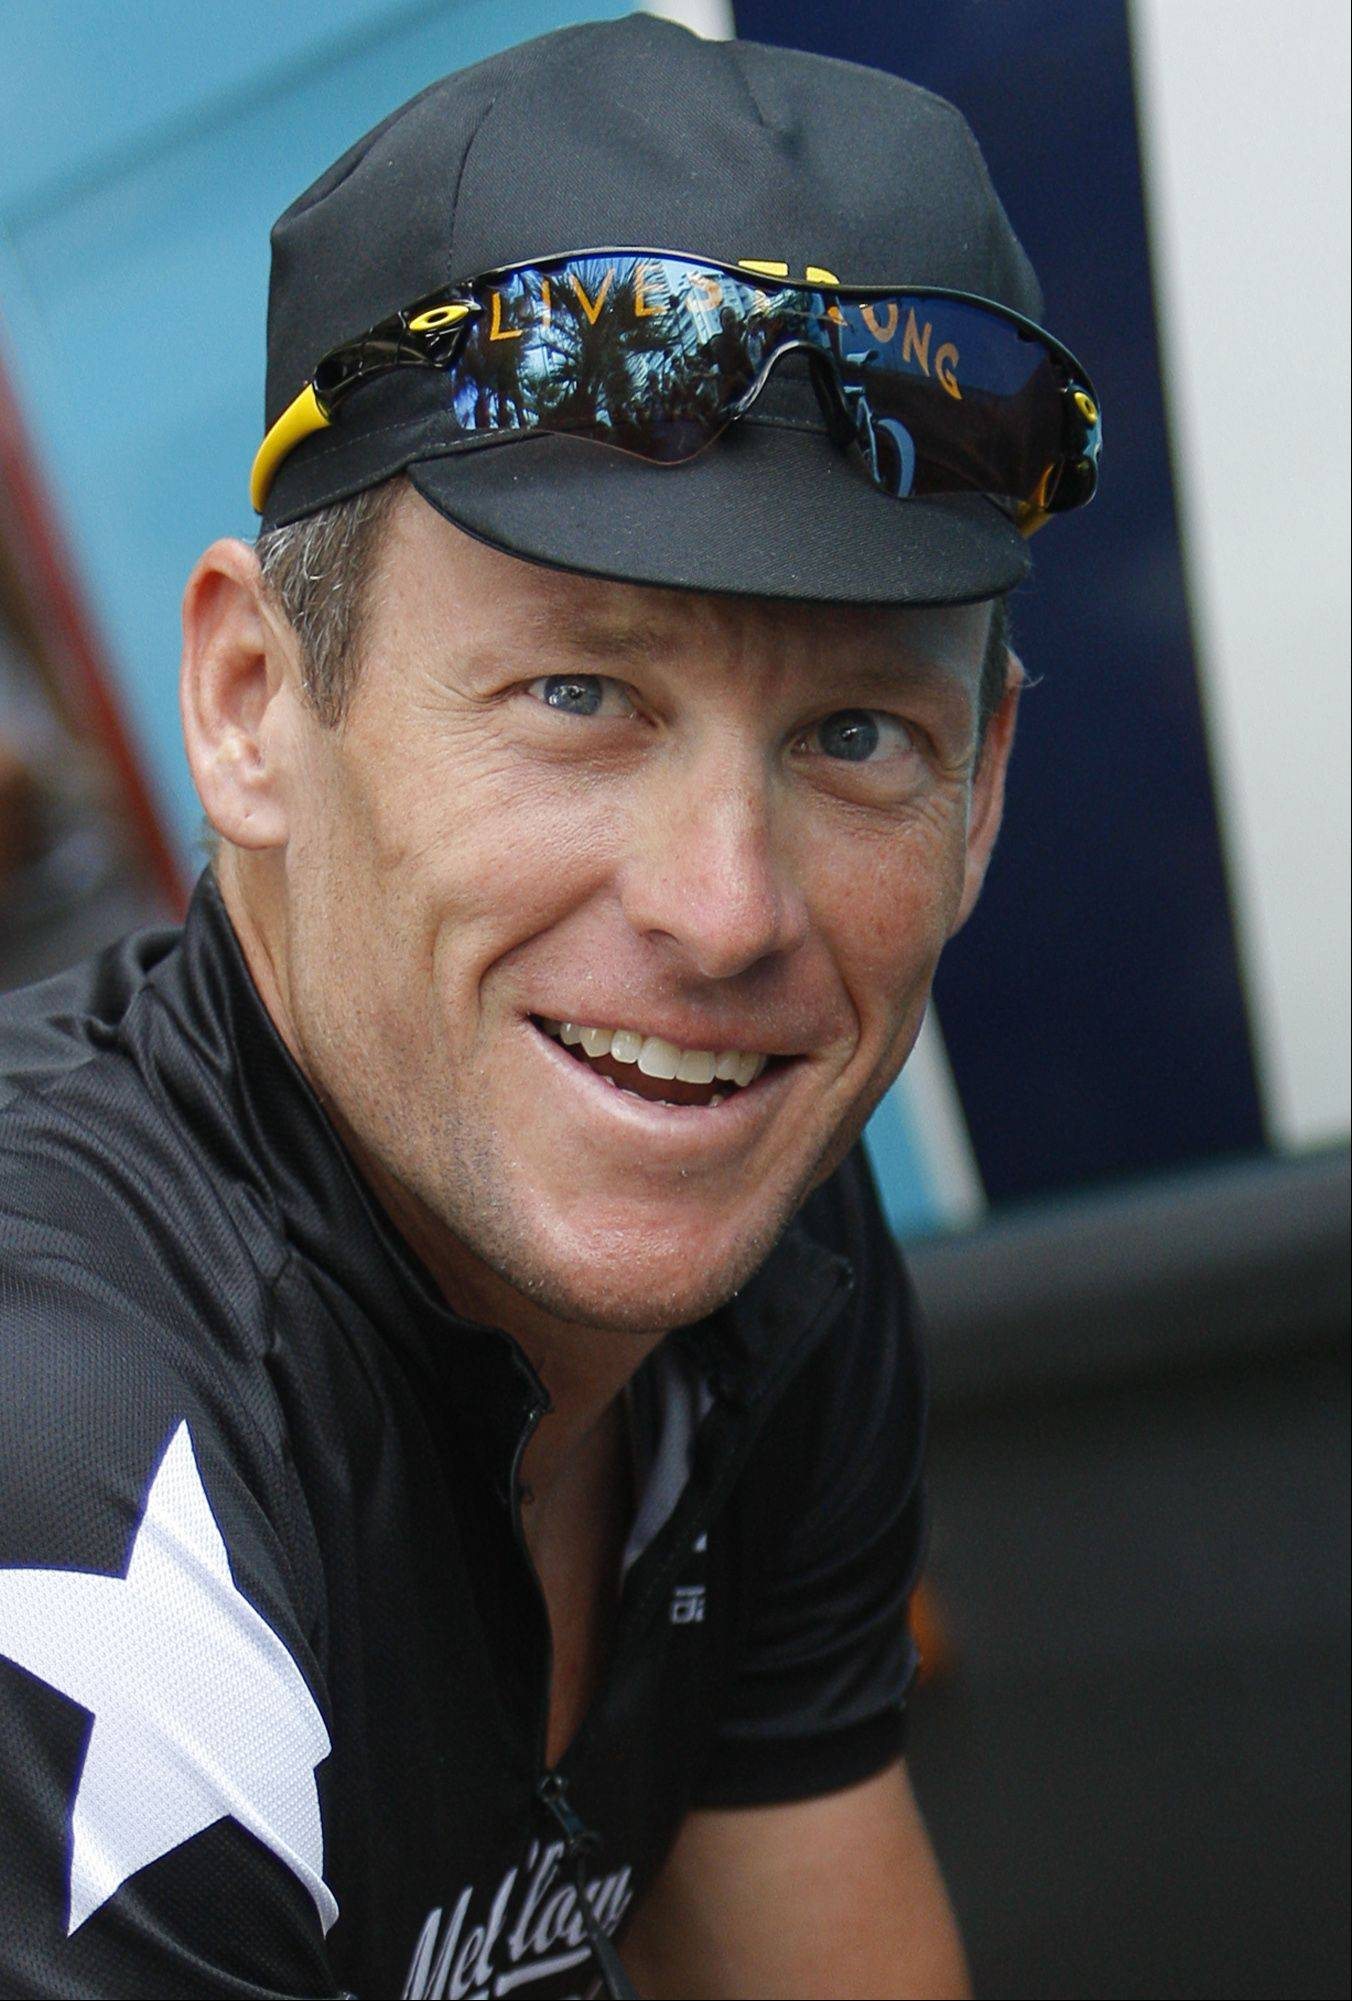 Lance Armstrong looks up as he prepares to leave for a training in Monaco Friday July 3, 2009, ahead of the start of the 96th edition of the Tour de France cycling race Saturday July 4, 2009.